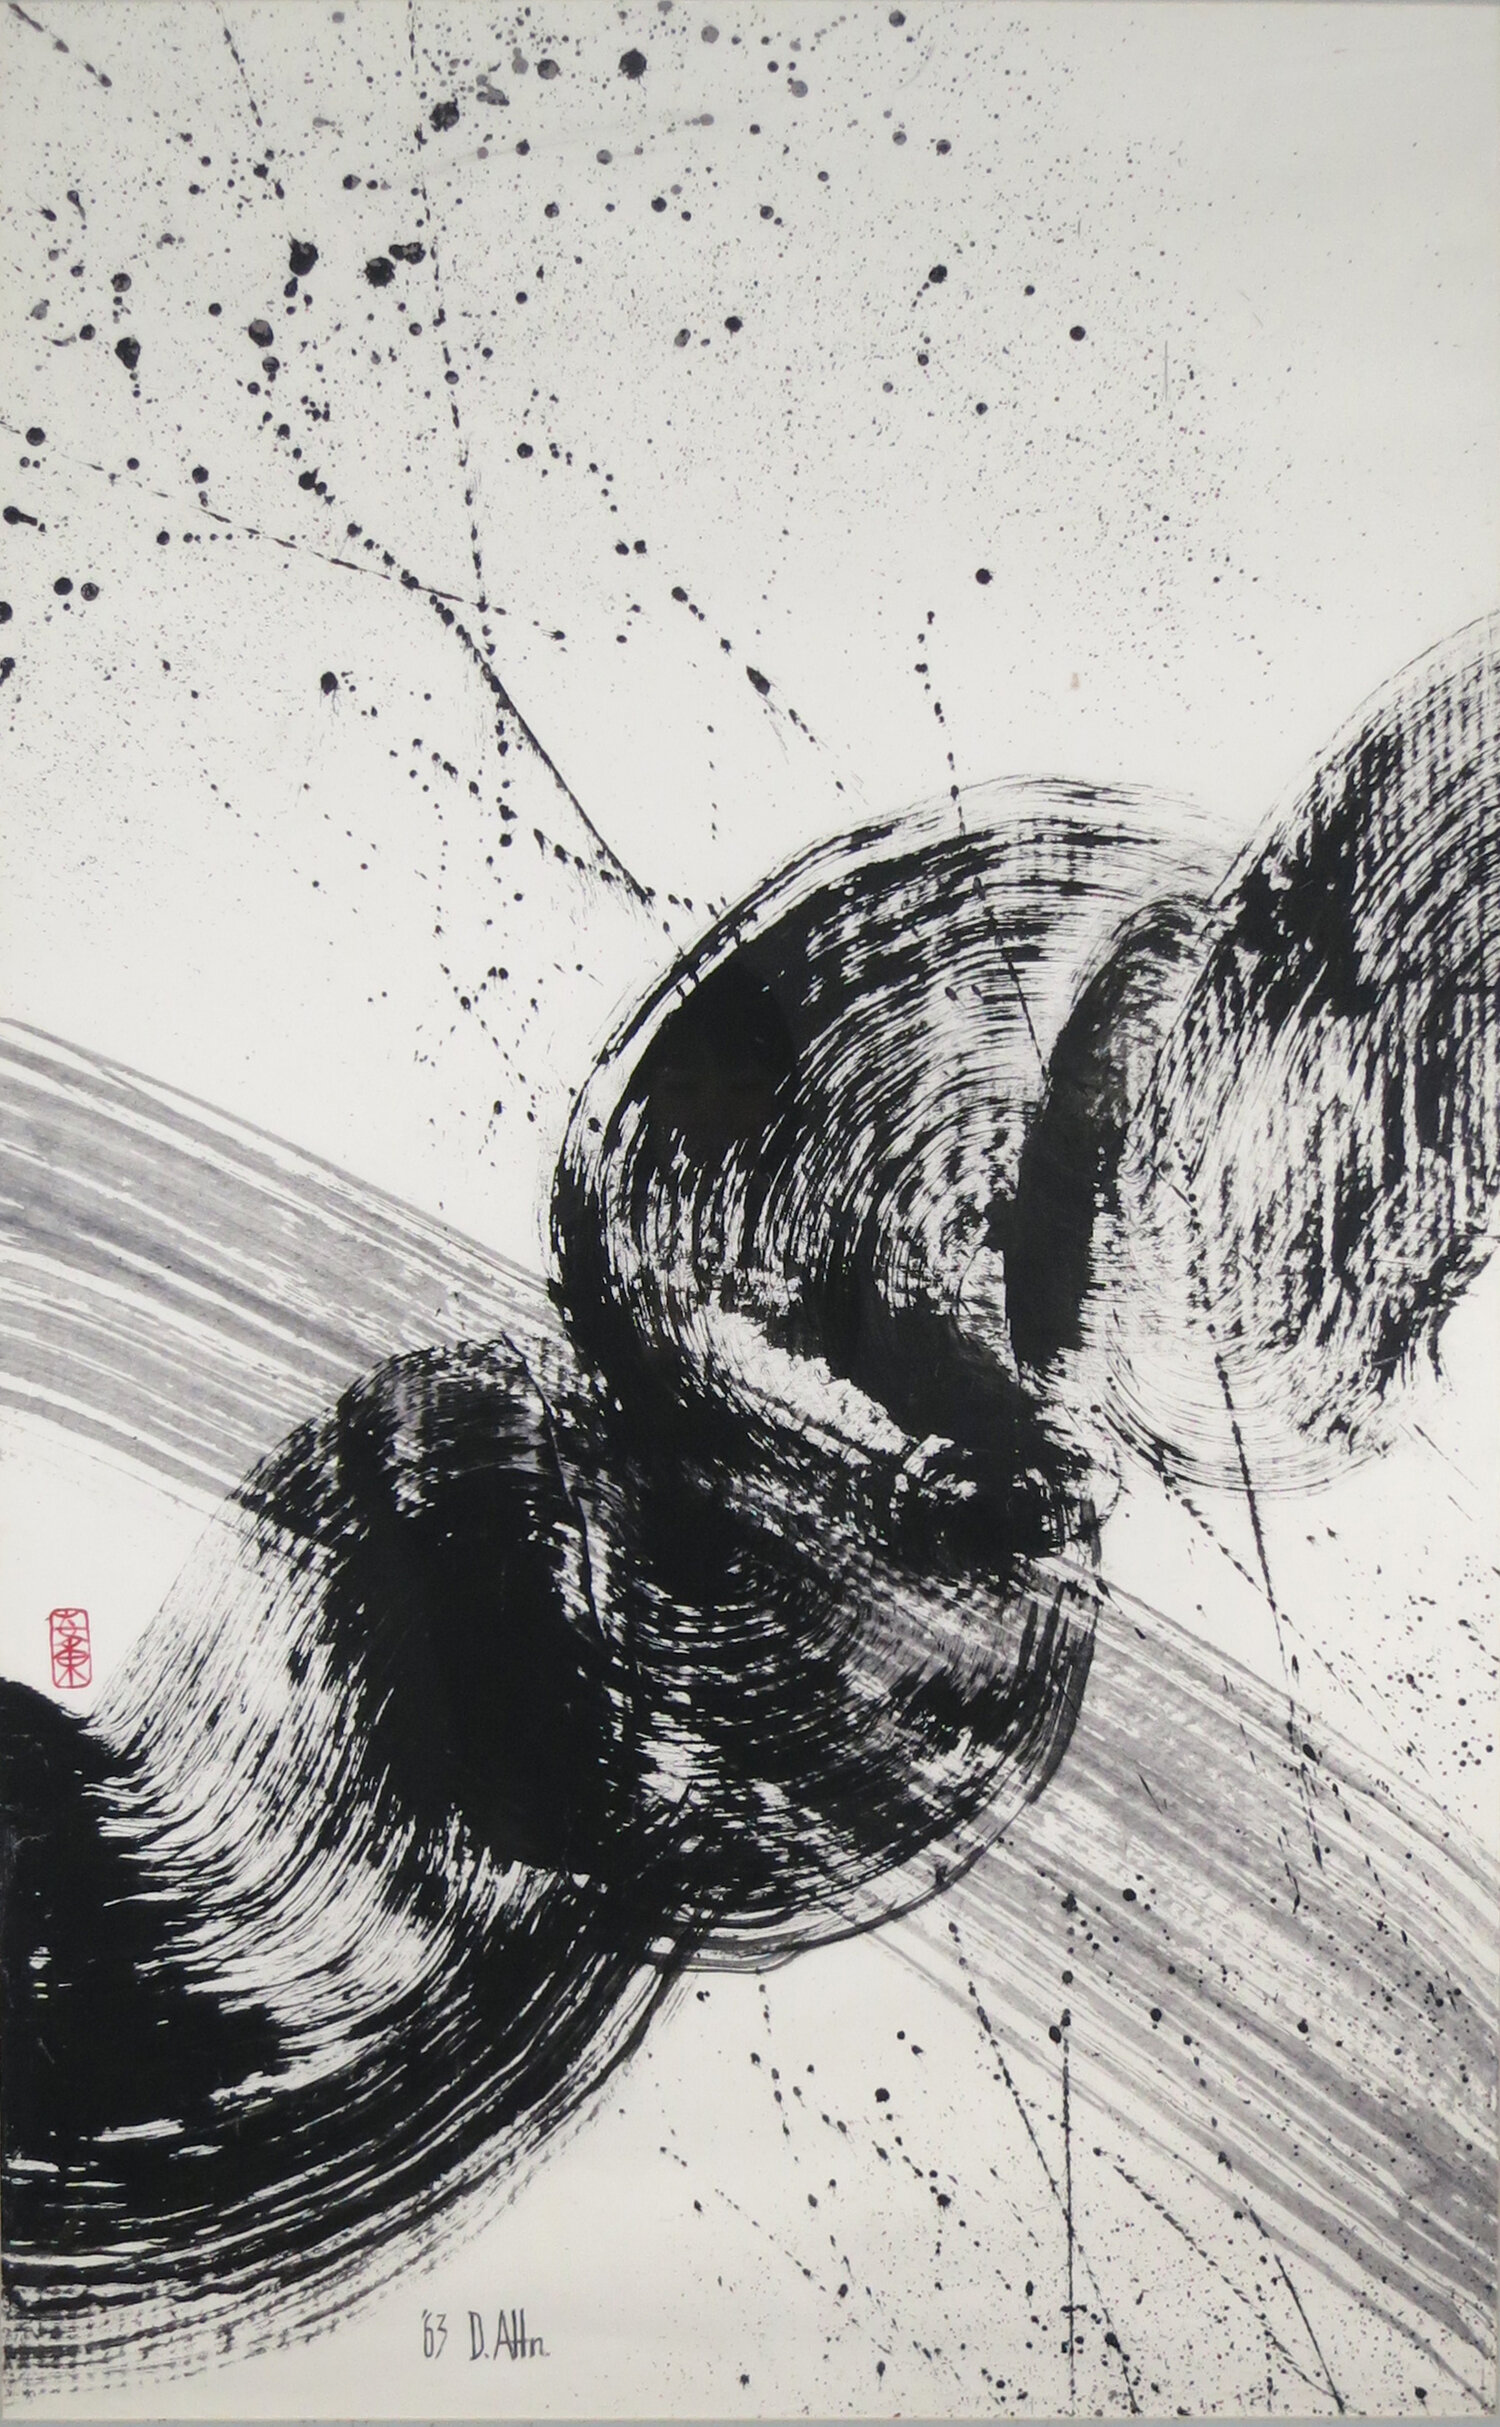 """Zen Dragon , 1962, Acrylic on Canvas, 45"""" x 28"""". Abstract calligraphy in circular motion with black strokes and gray splatters on white background."""